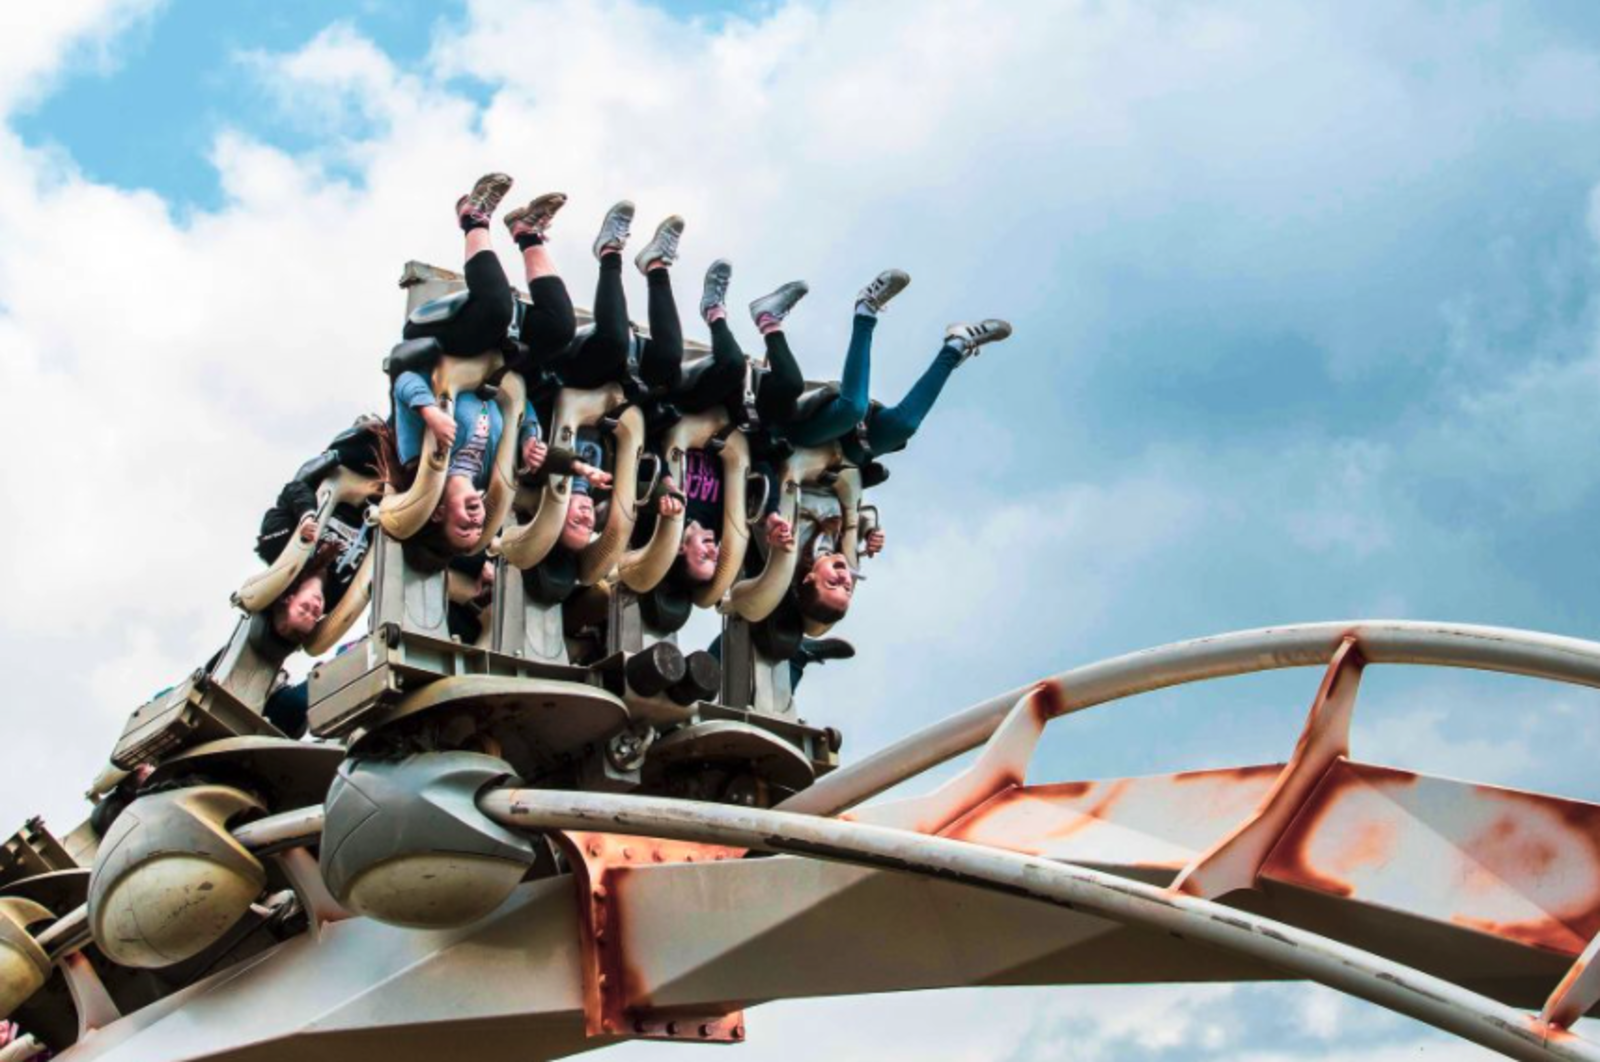 alton towers, getyourguide